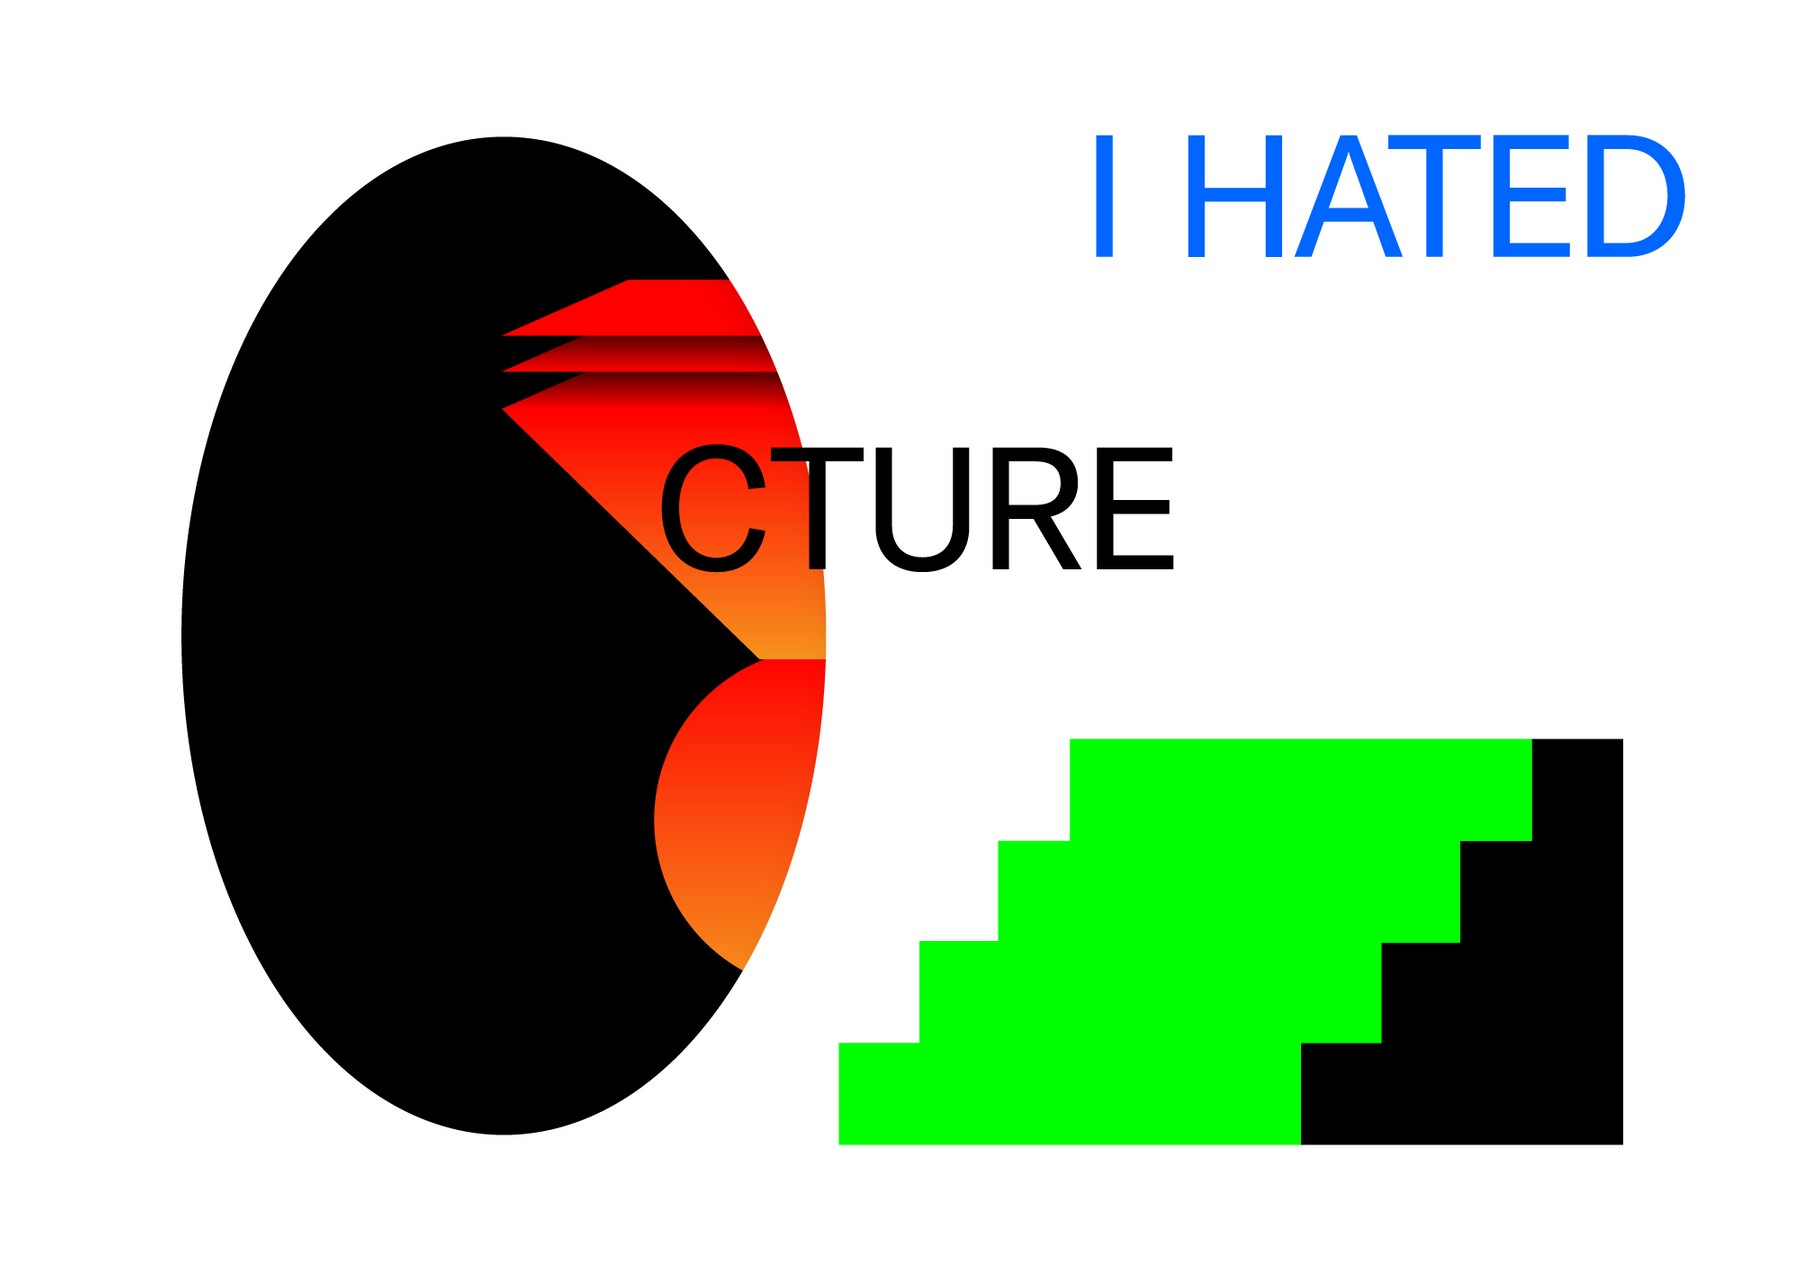 astructure.png